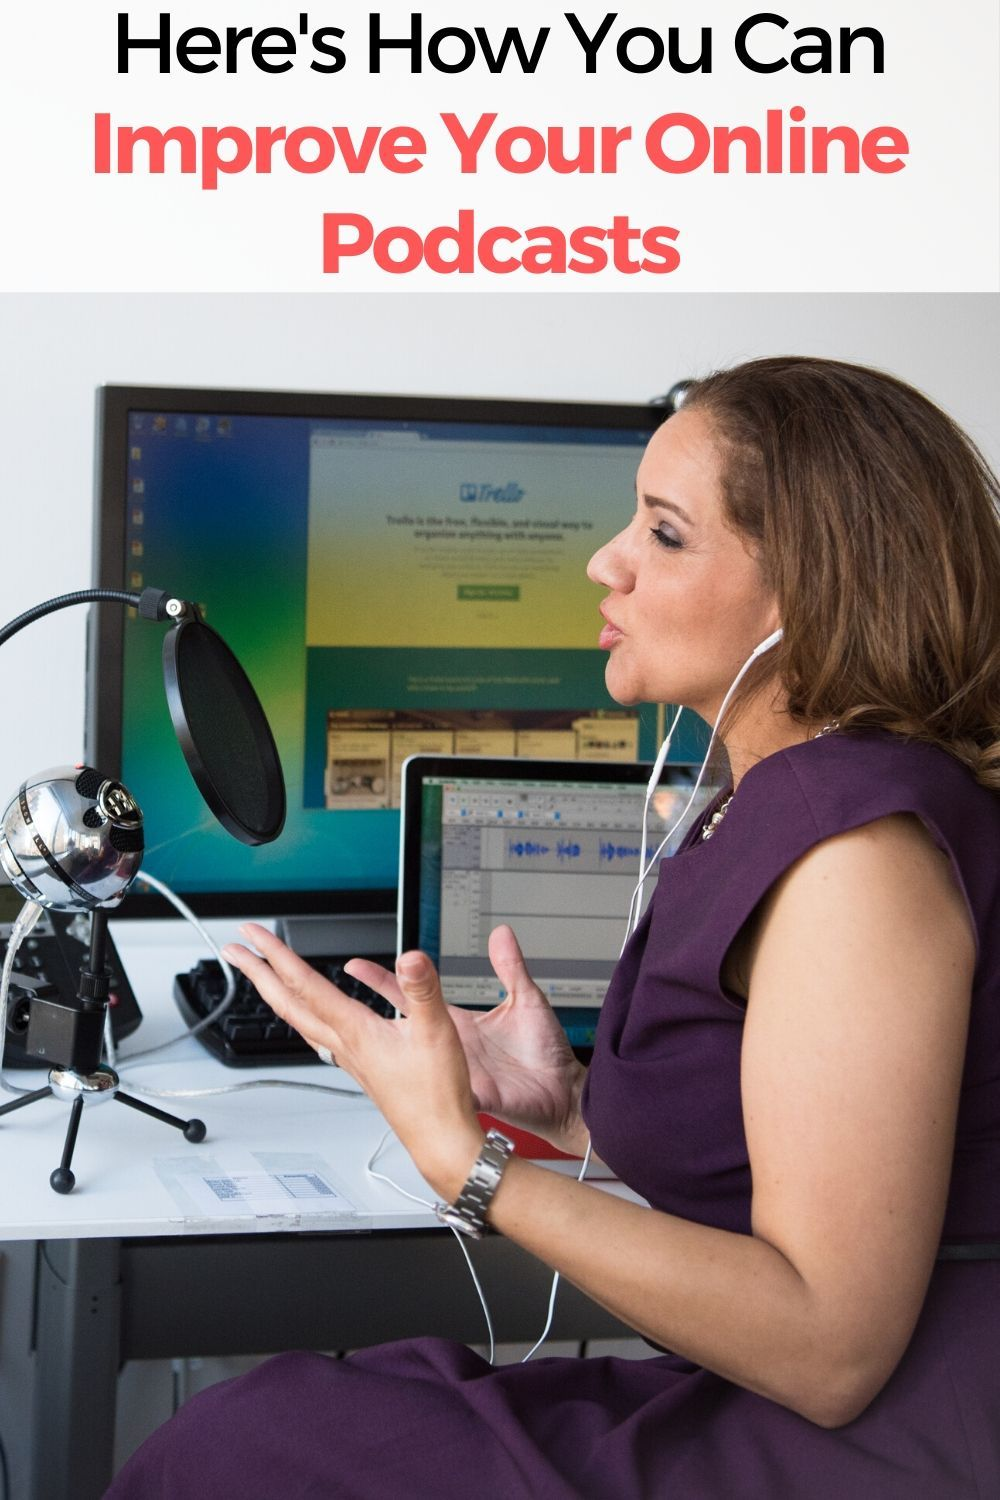 Here is How You Can Improve Your Online Podcasts